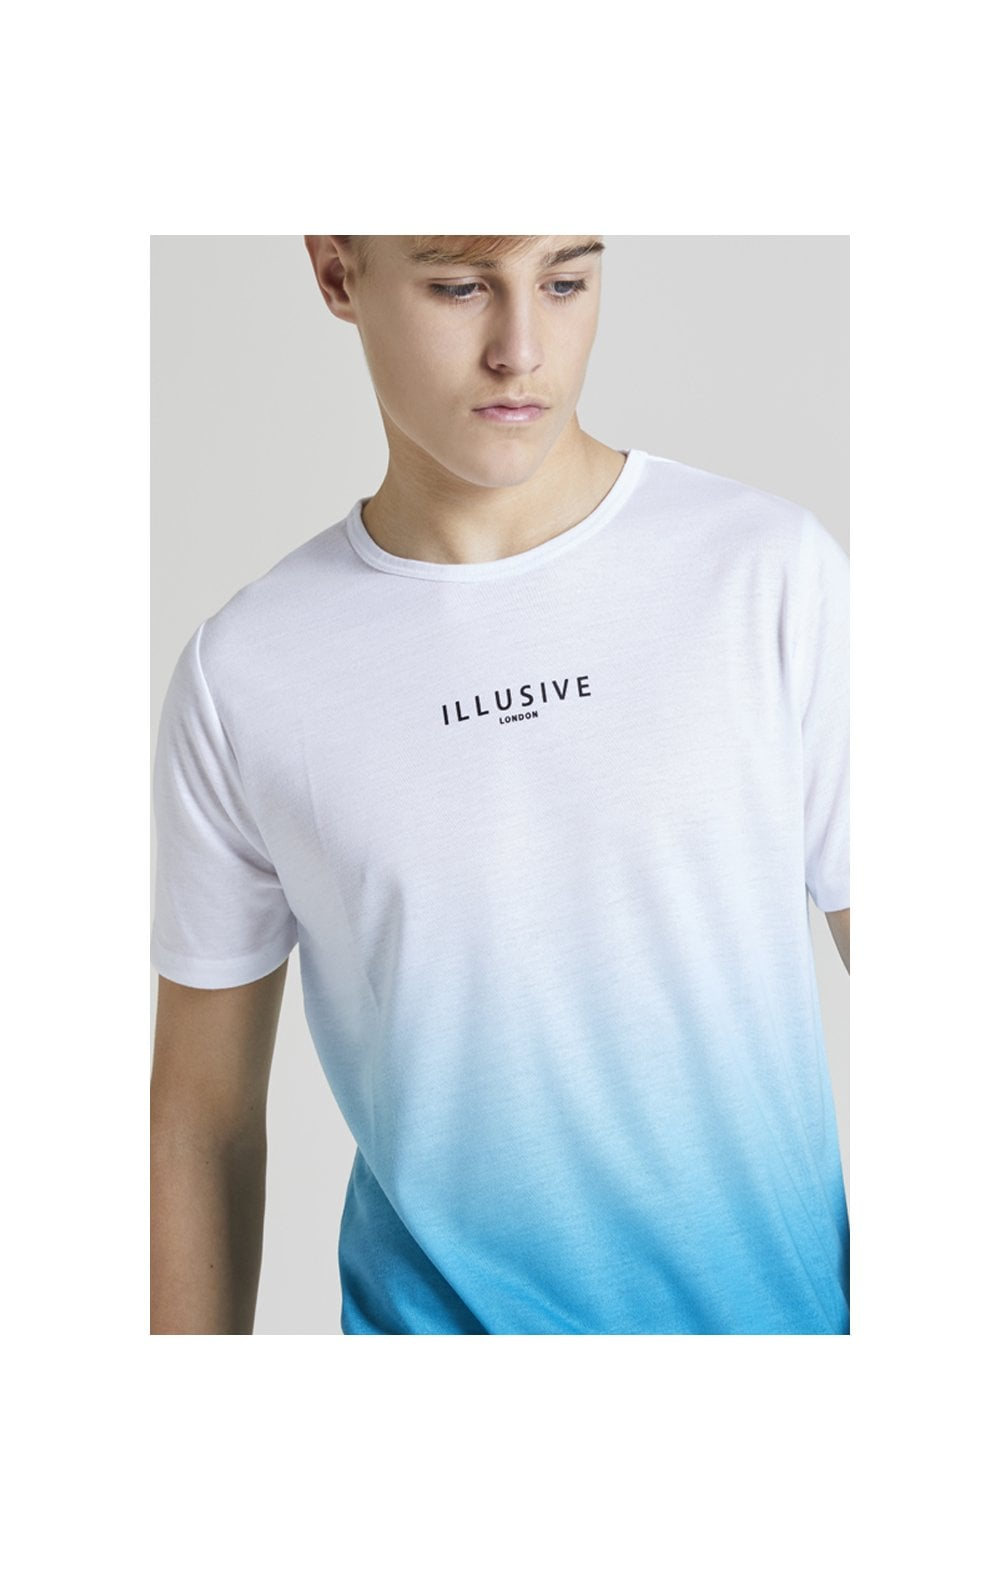 Illusive London Core Fade Tee – White & Teal Green (1)